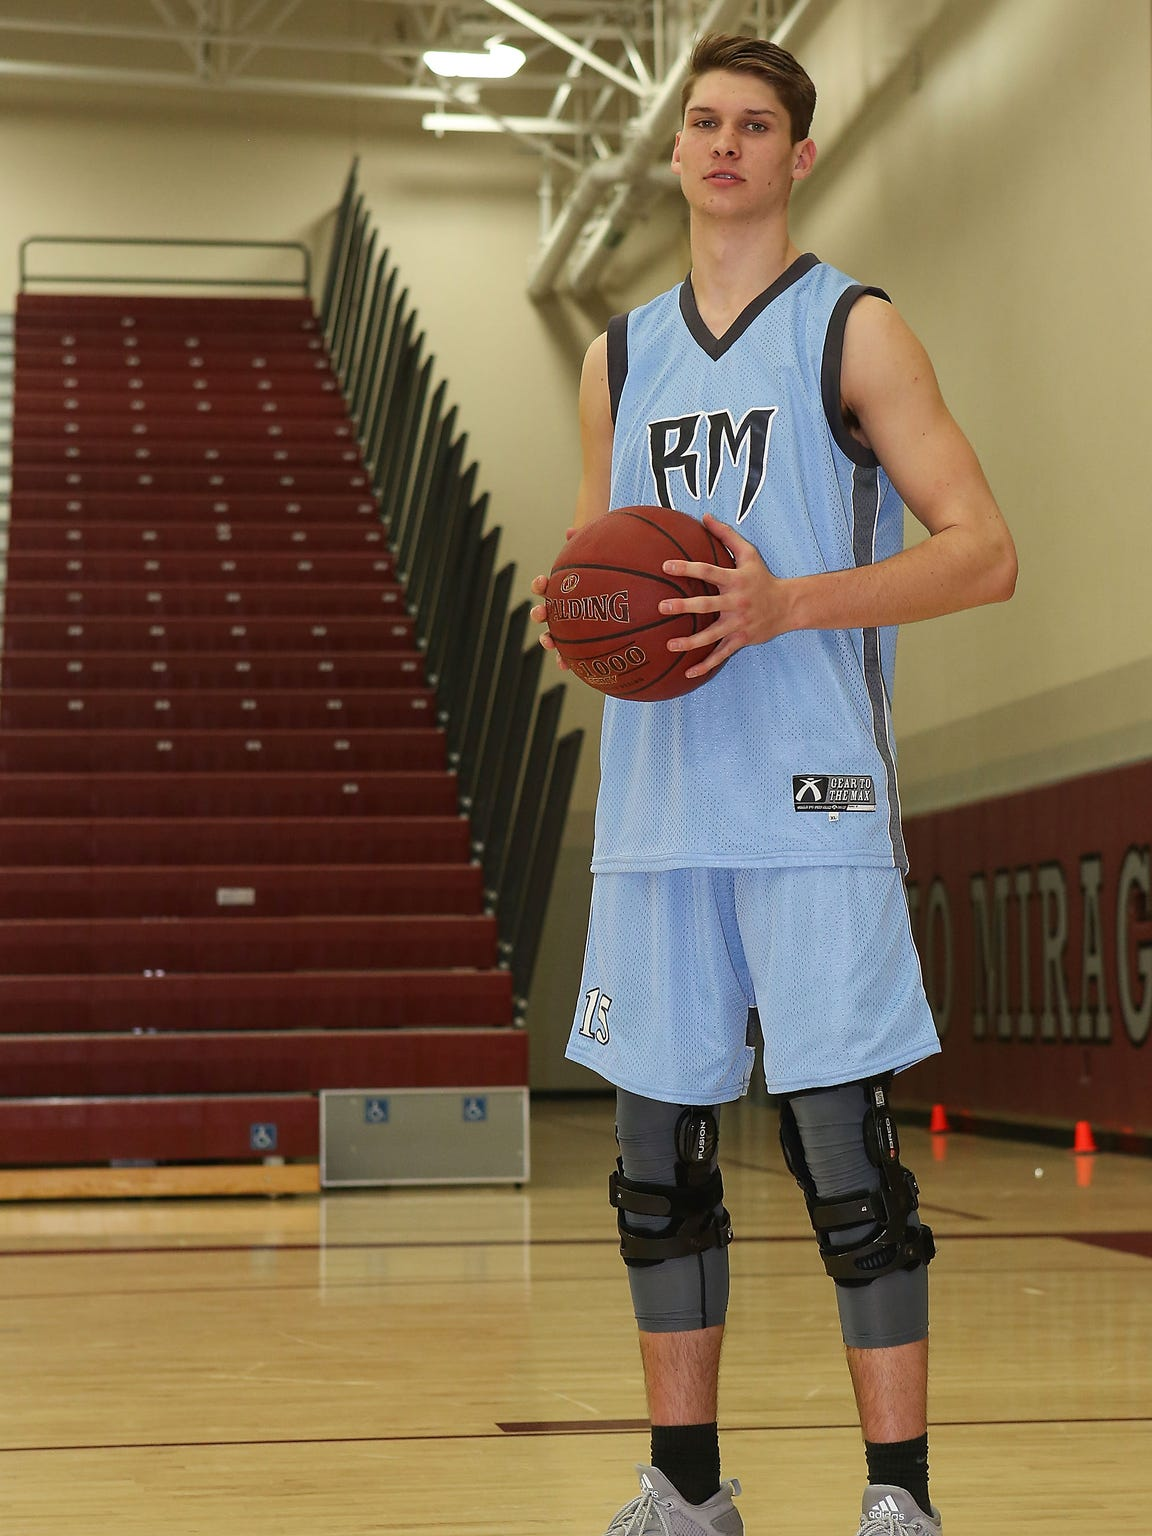 Rancho Mirage High School basketball player Bryan Talley has come back from two ACL tears to be a dominant leader for the Rattlers.